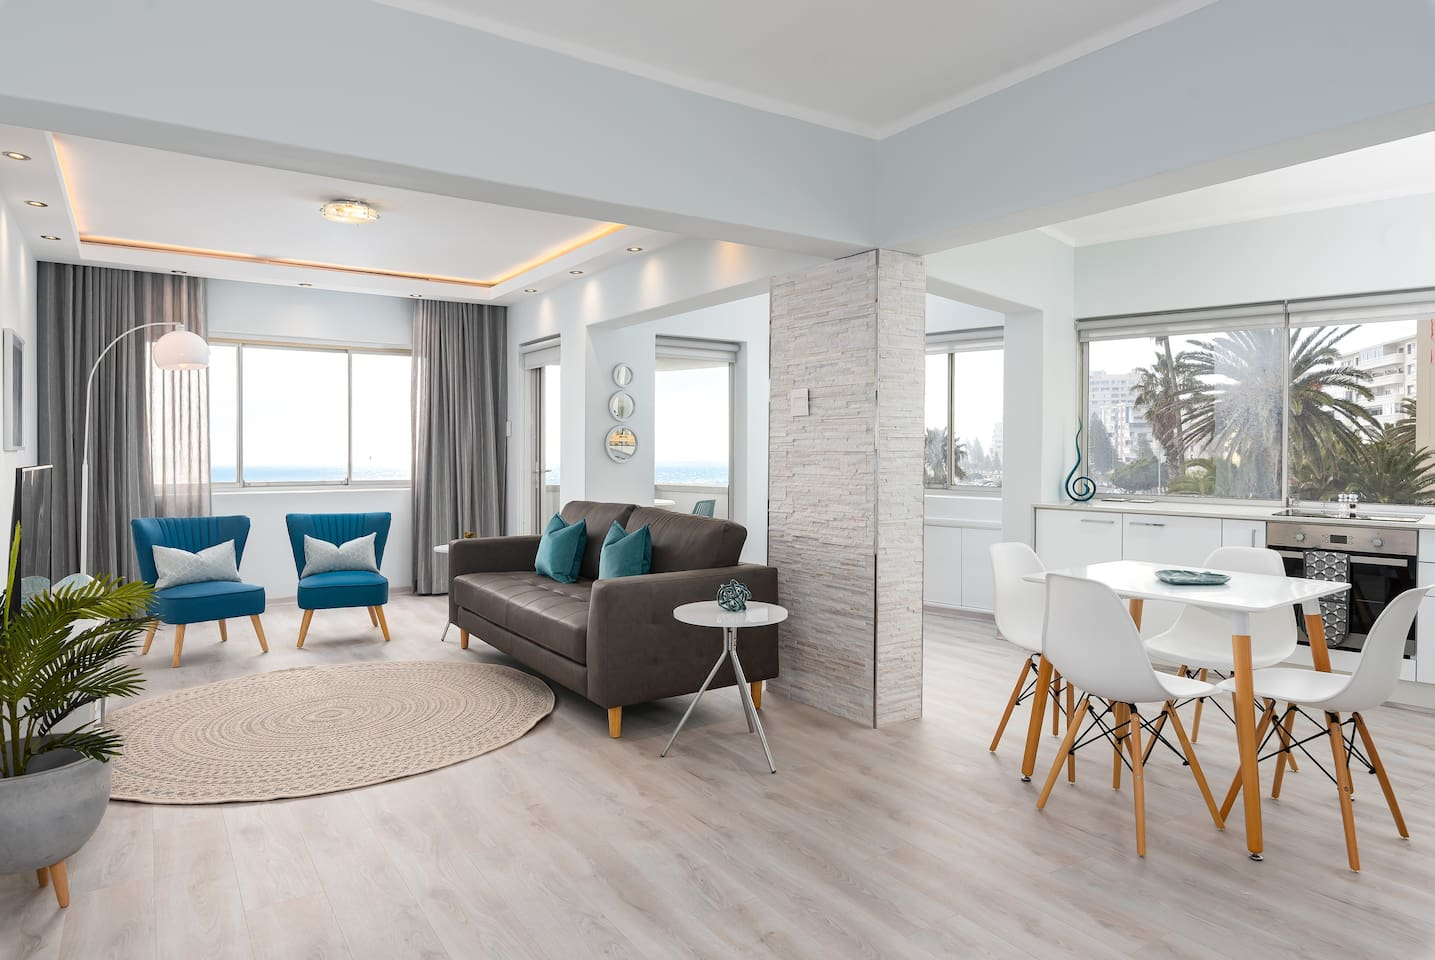 Contemporary open plan bright and airy living area providing spectacular sea views from all windows.